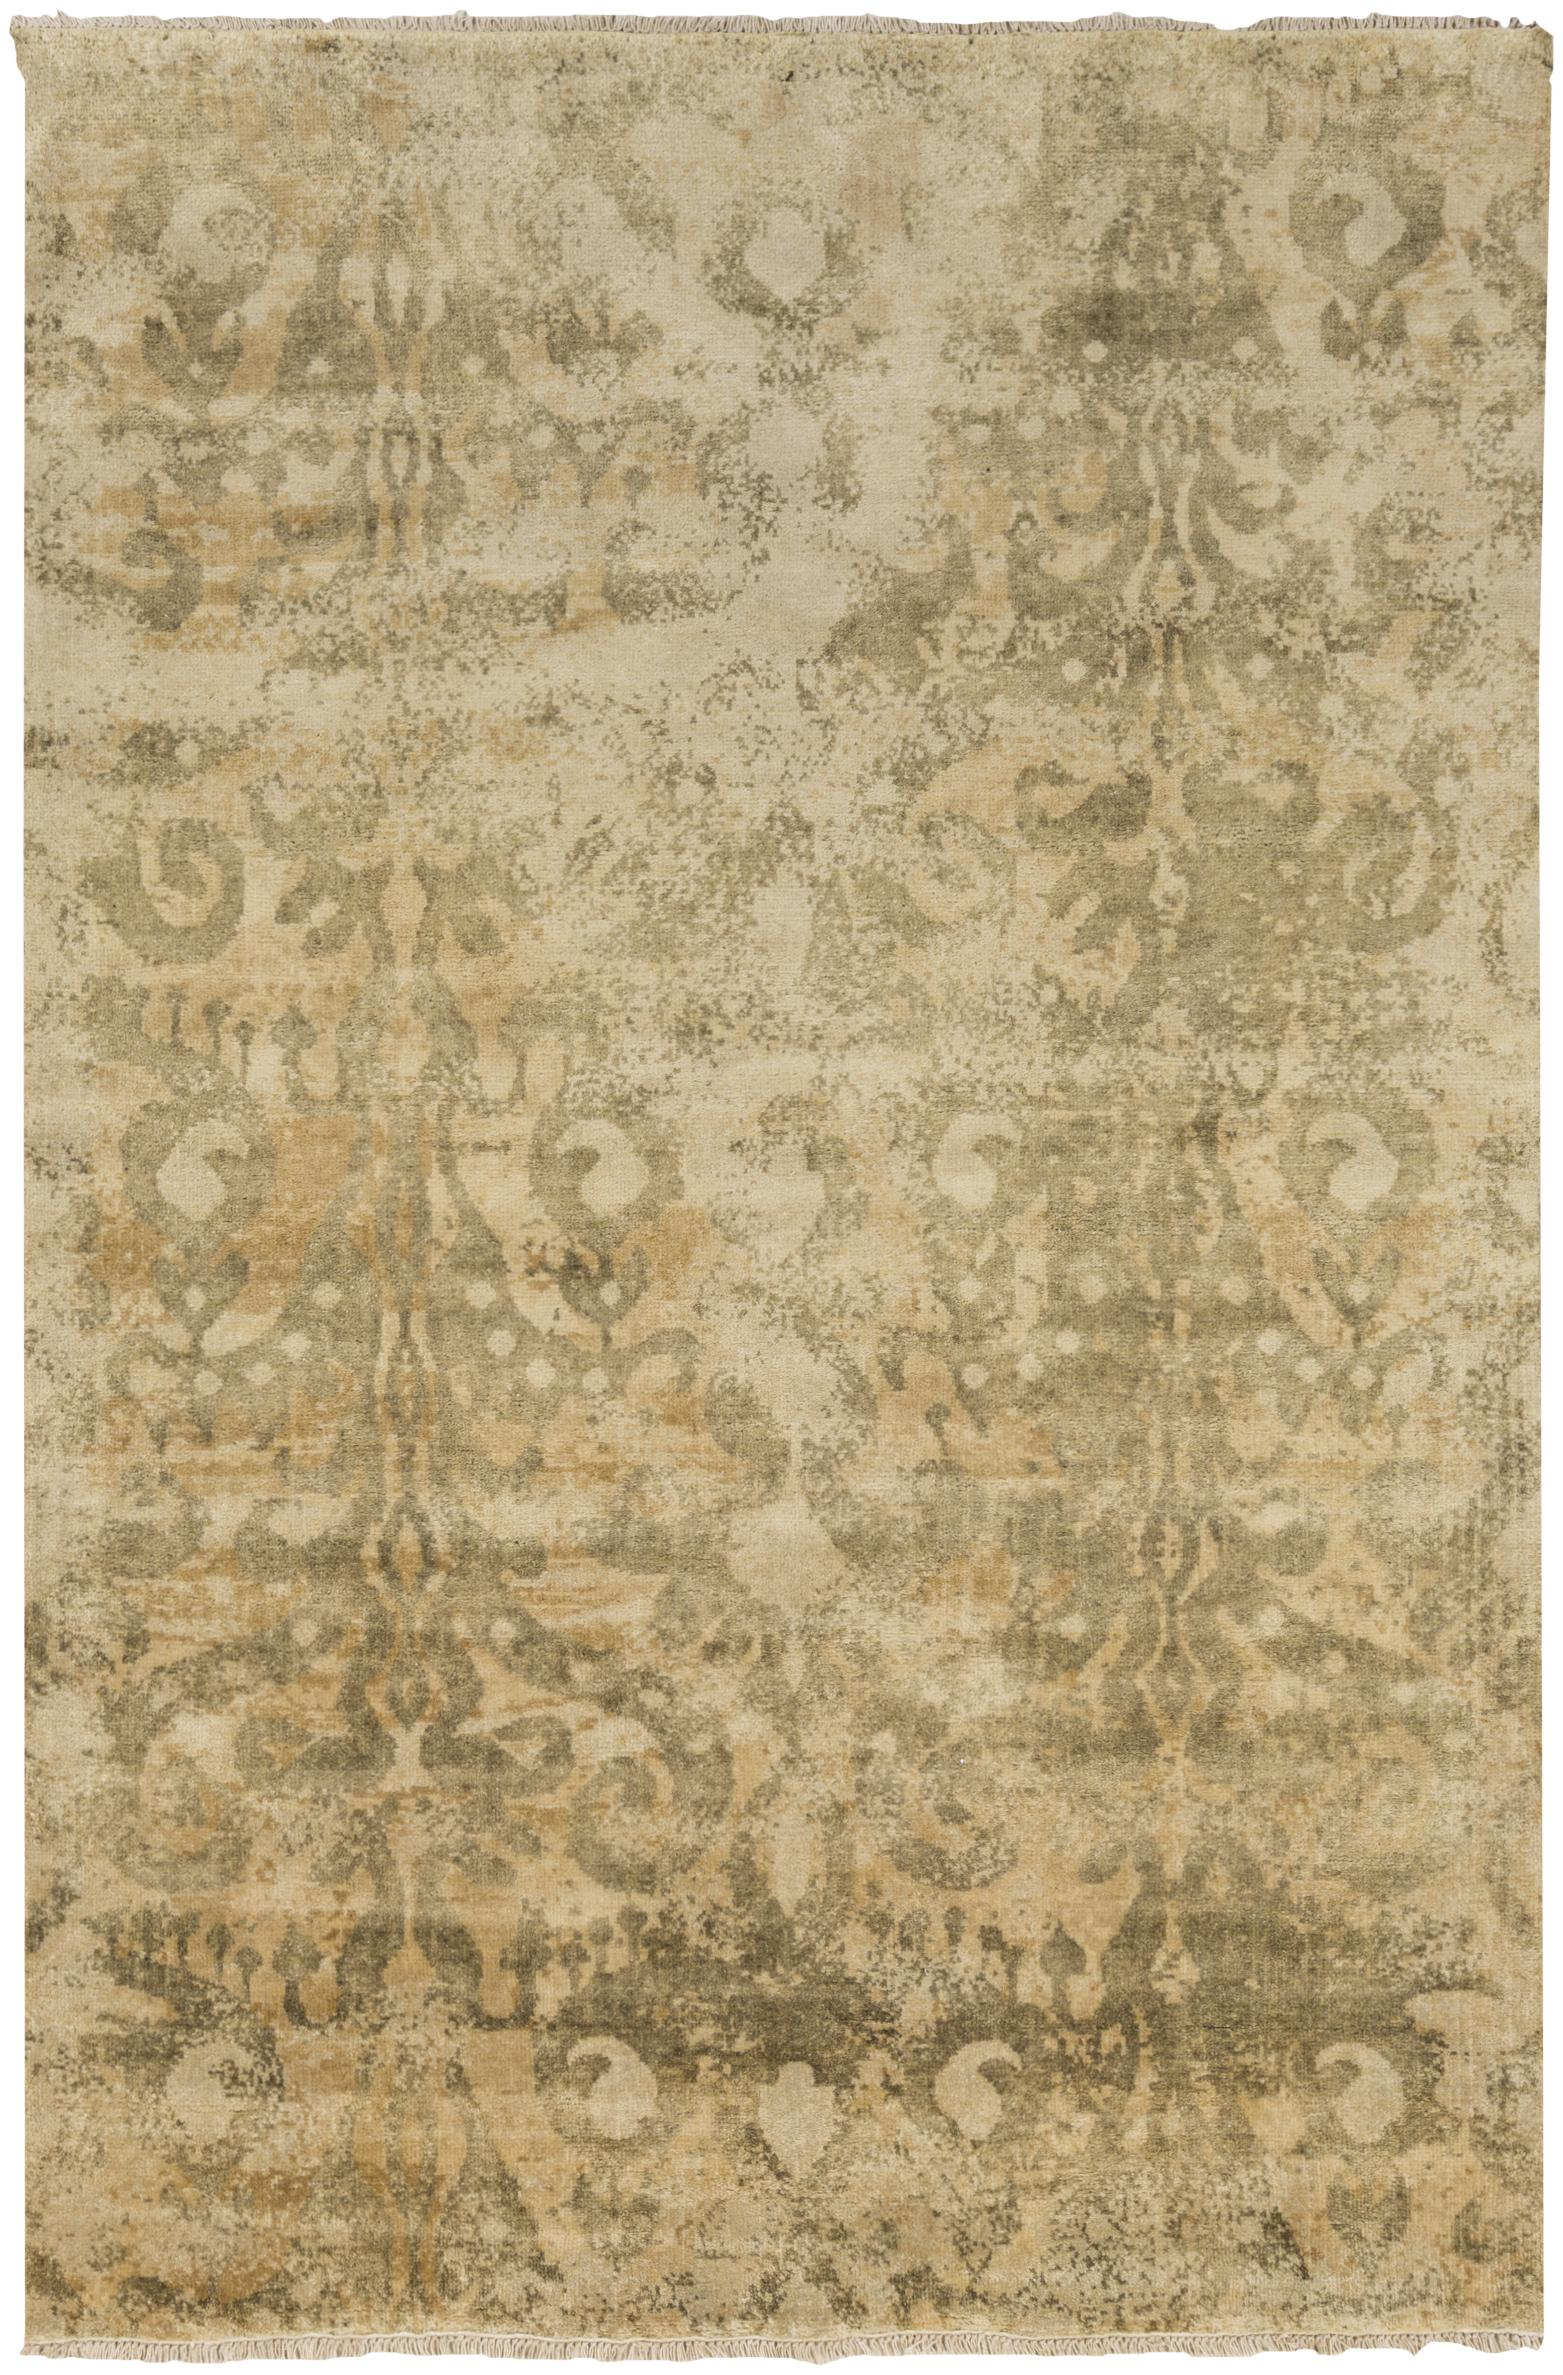 Surya Rugs Uncharted 2' x 3' - Item Number: UND2001-23